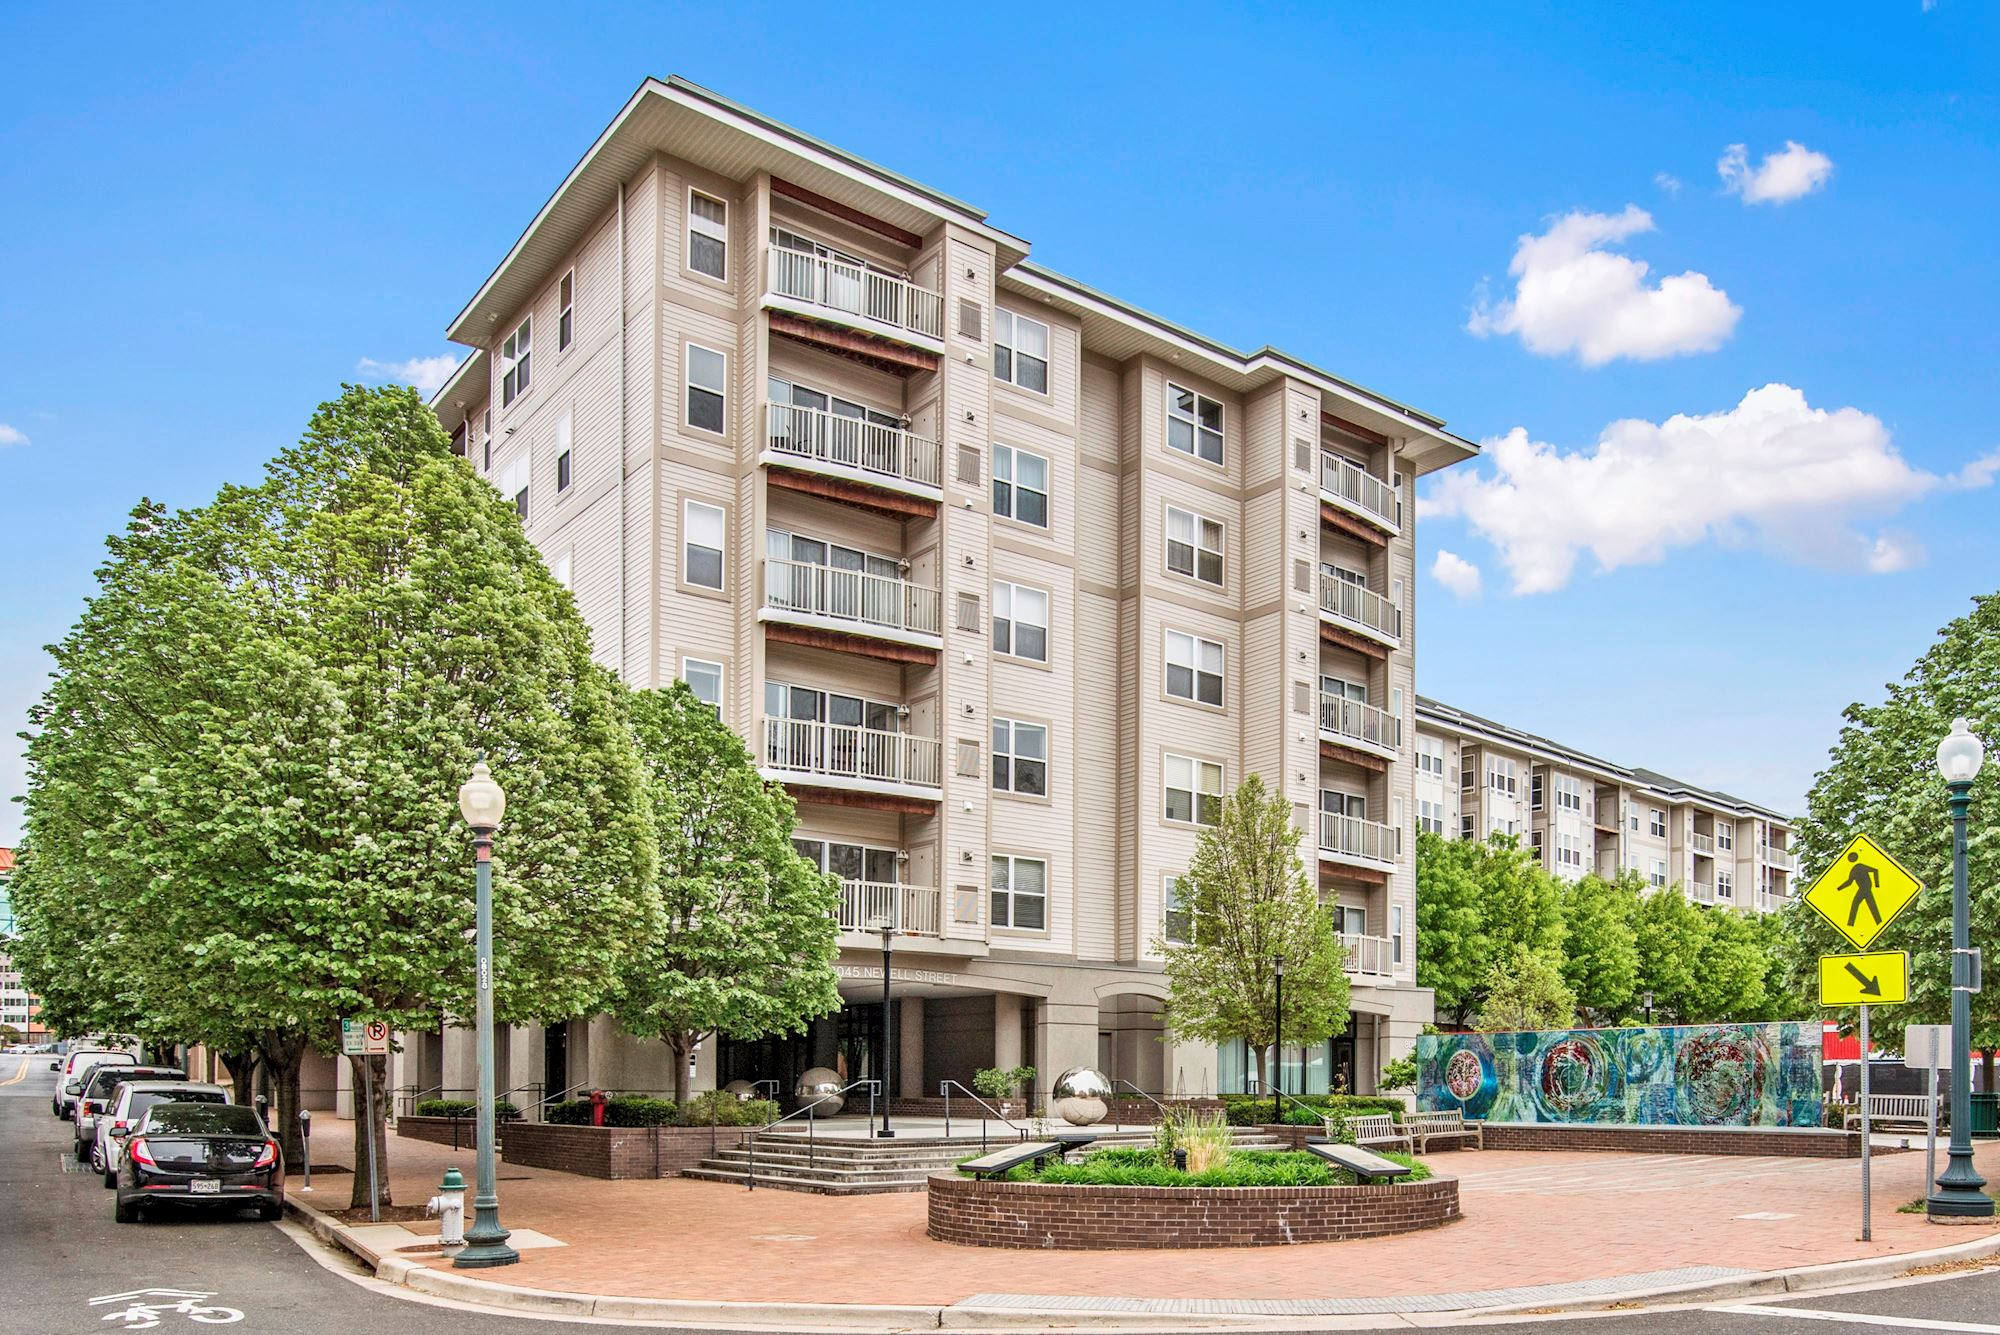 NEW LISTING: CORNER UNIT CONDO IN HEART OF SILVER SPRING